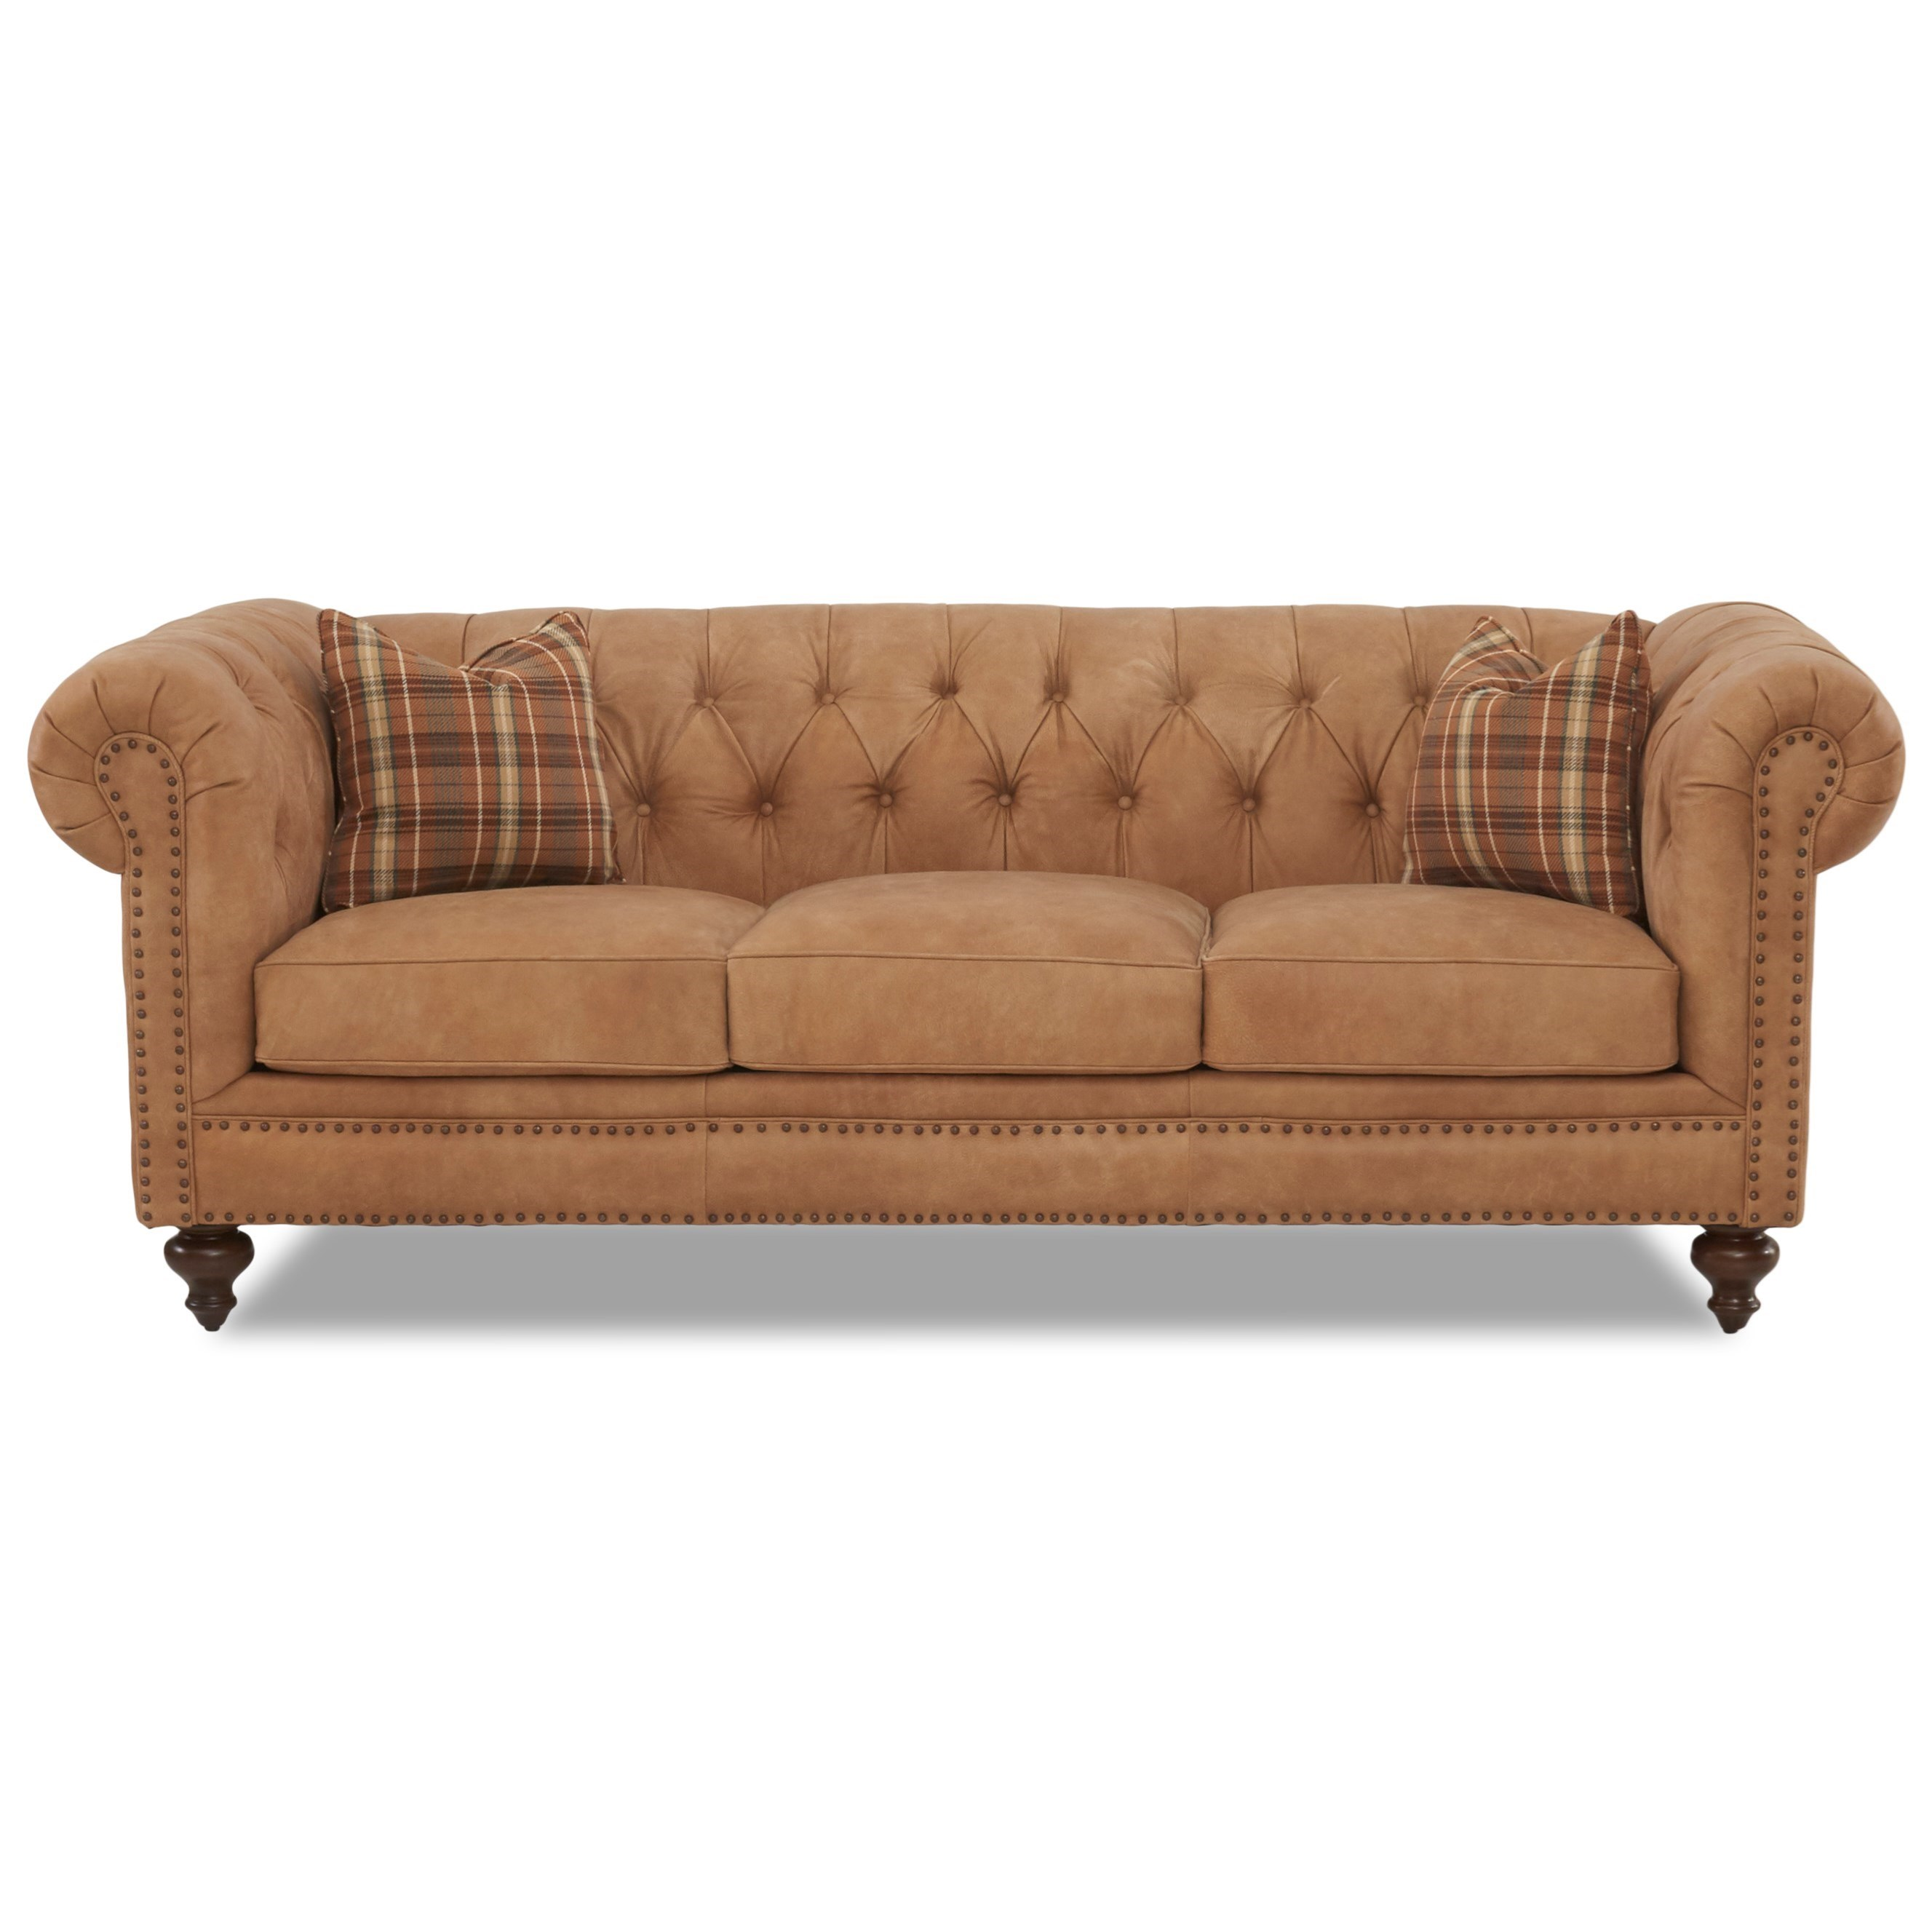 Klaussner Charlotte Traditional Chesterfield Sofa With